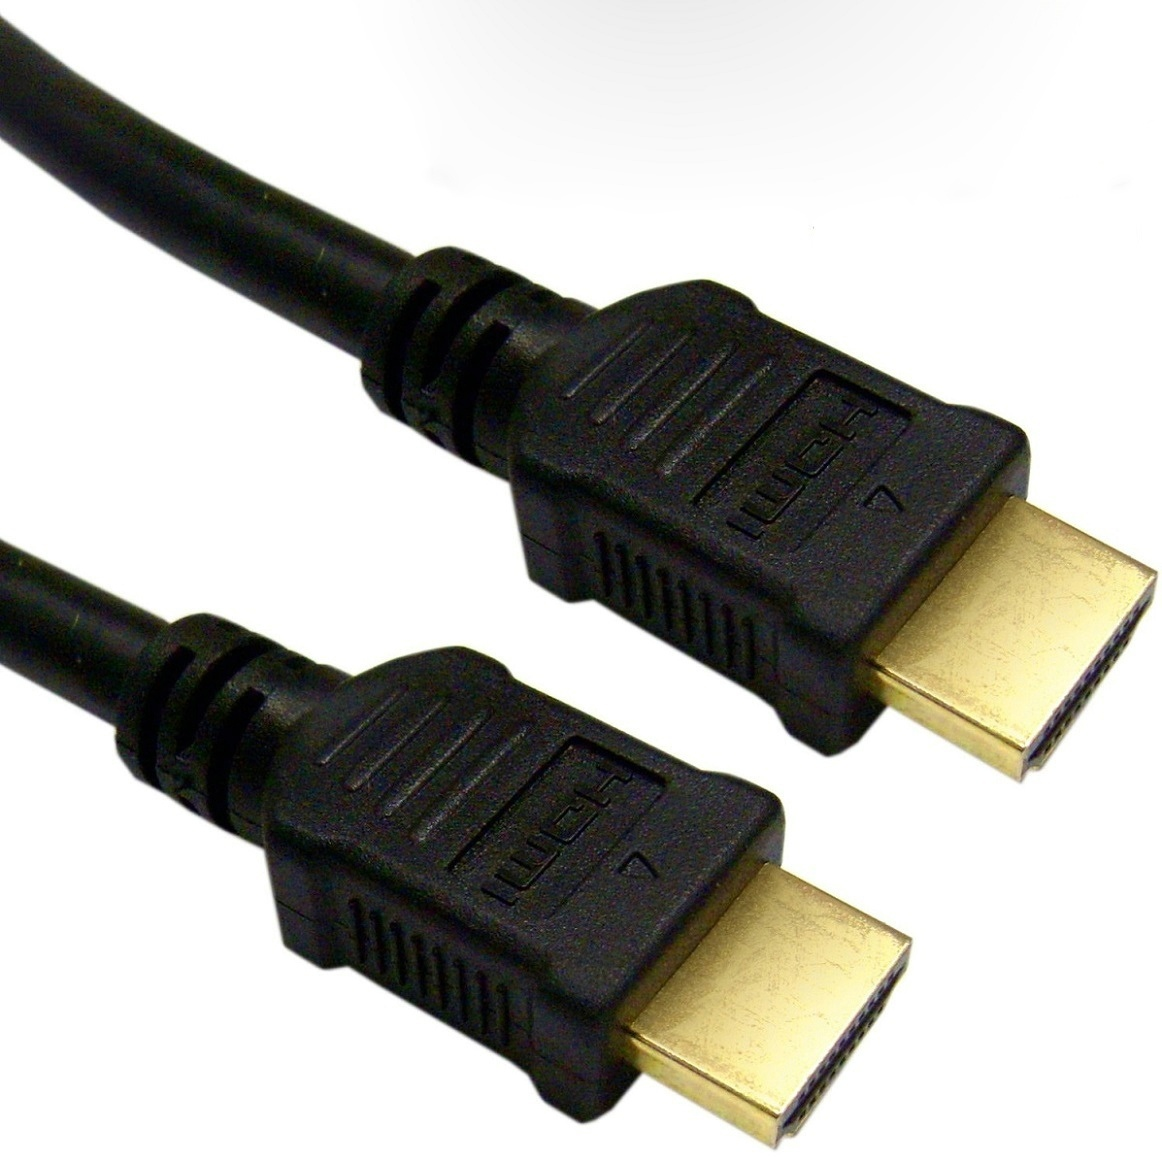 Plenum-Rated (CMP) HDMI Cable with Ethernet 24 AWG